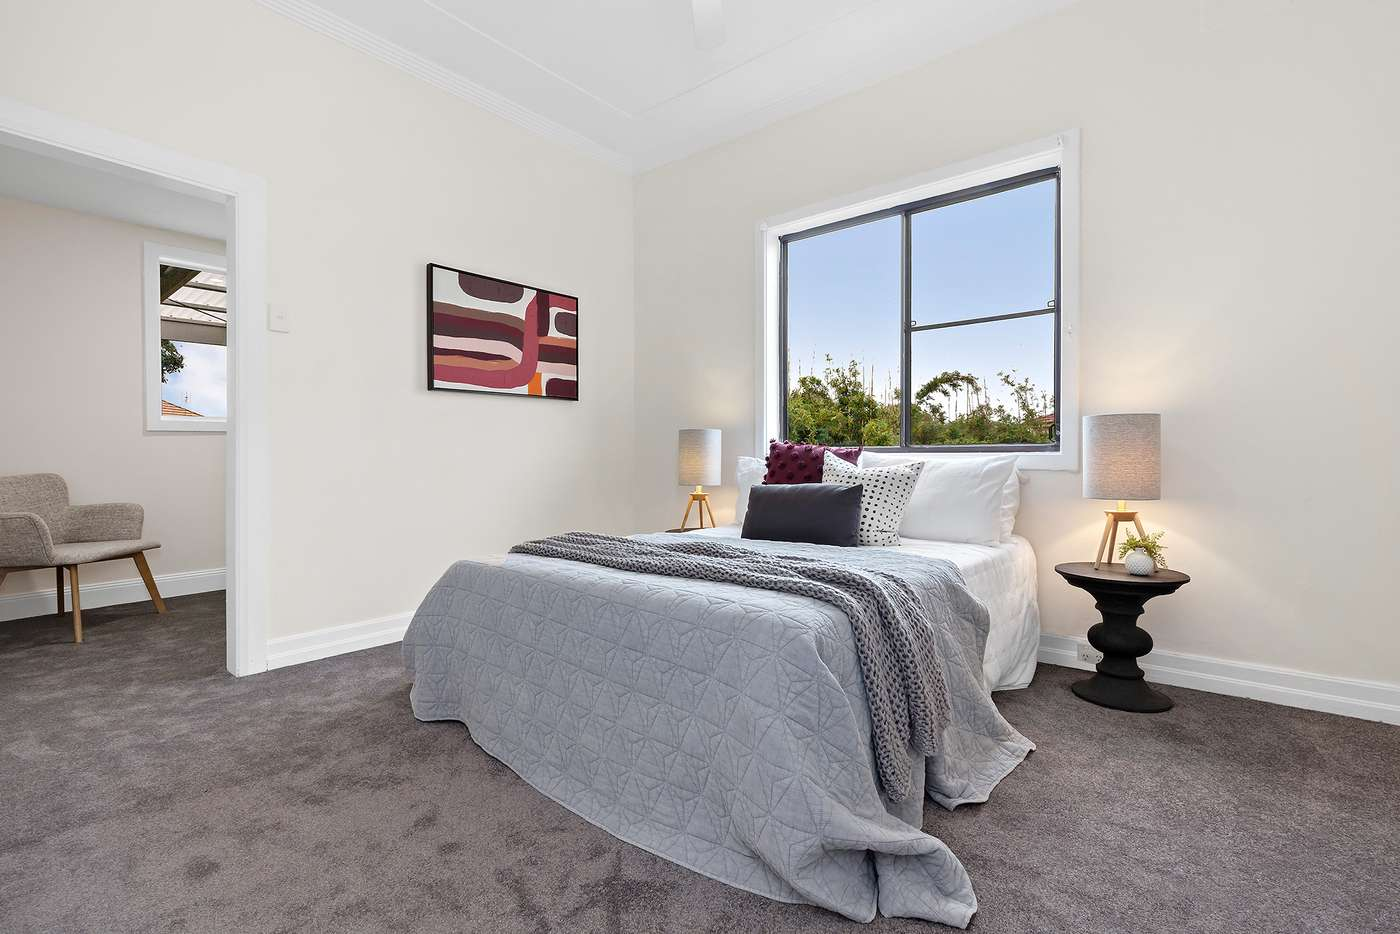 Fifth view of Homely house listing, 135 Edith Street, Waratah NSW 2298